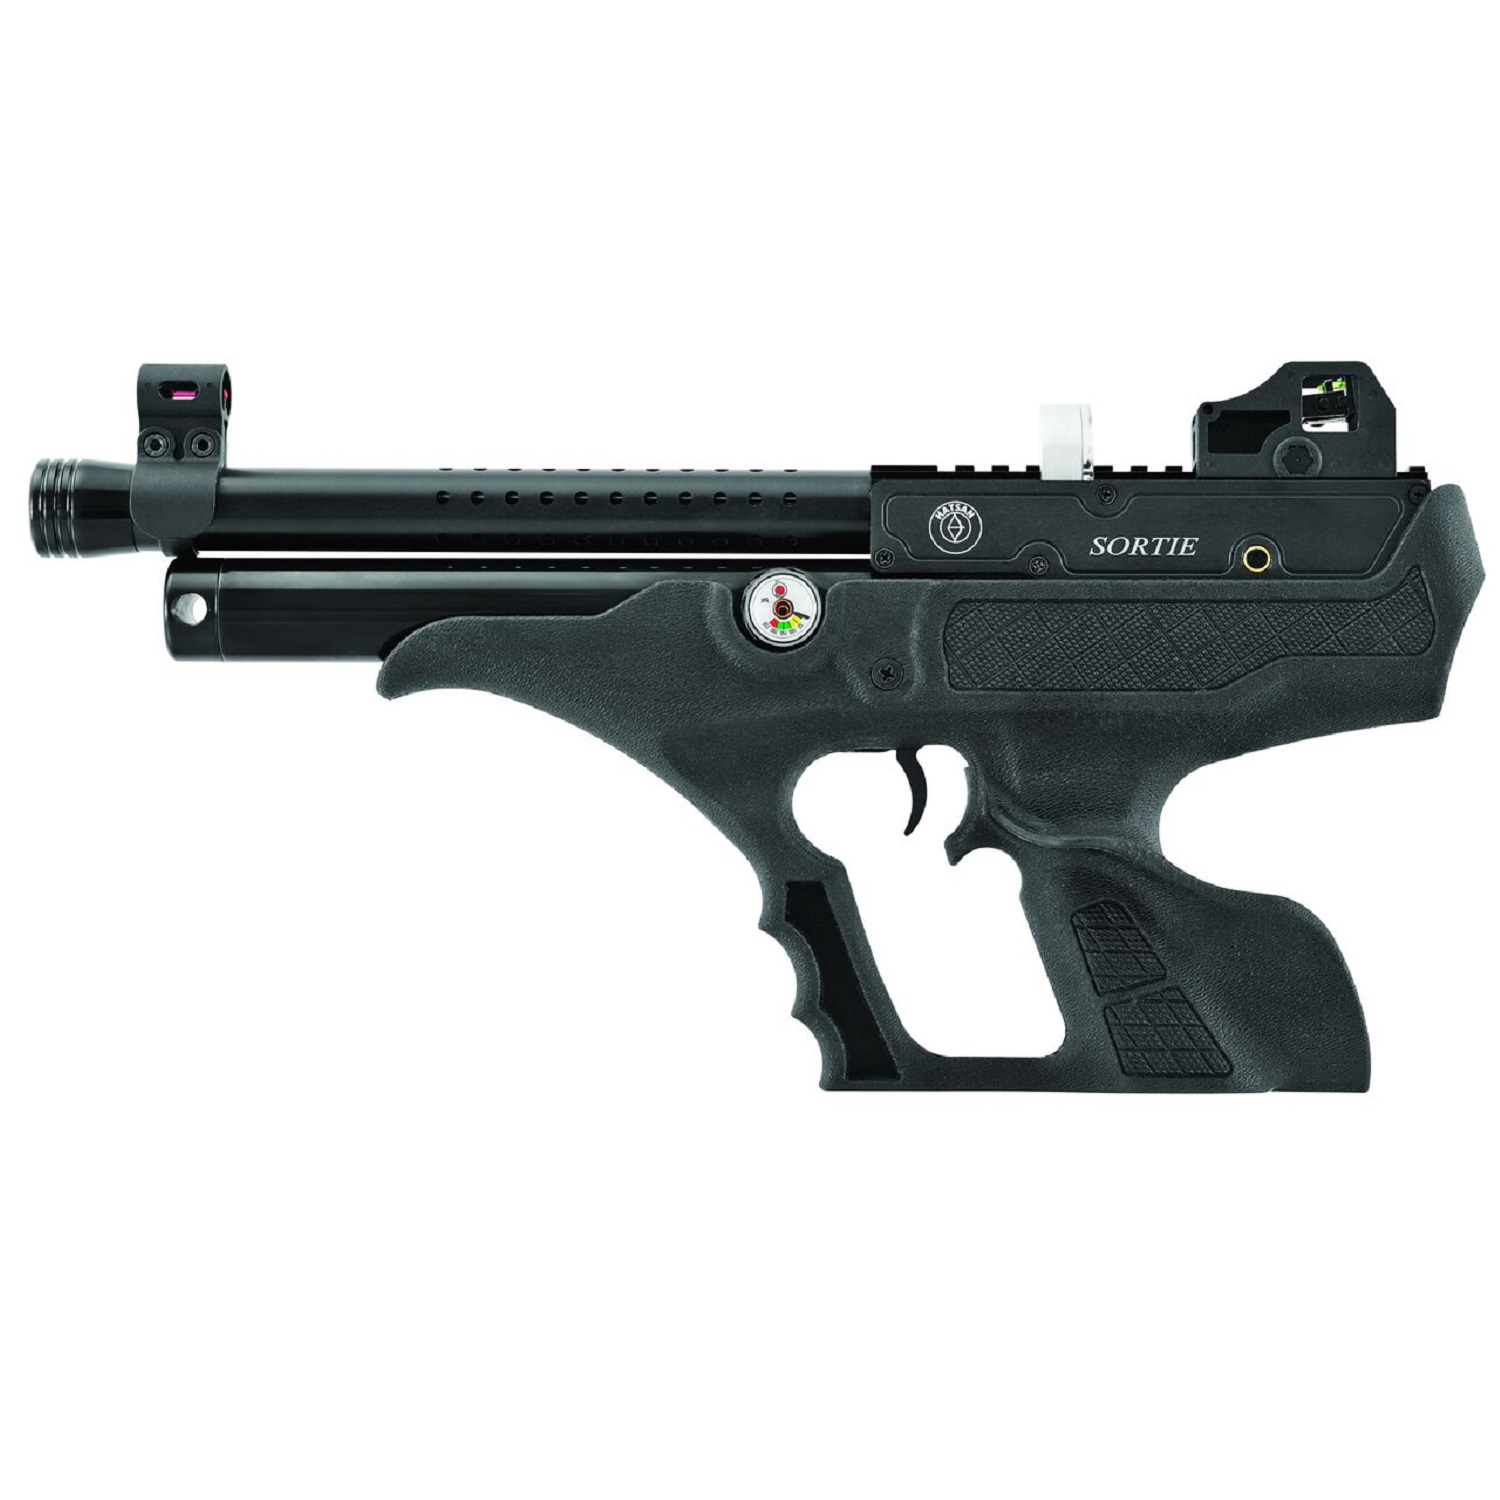 Hatsan Sortie Synthetic Air Pistol - .25 Caliber